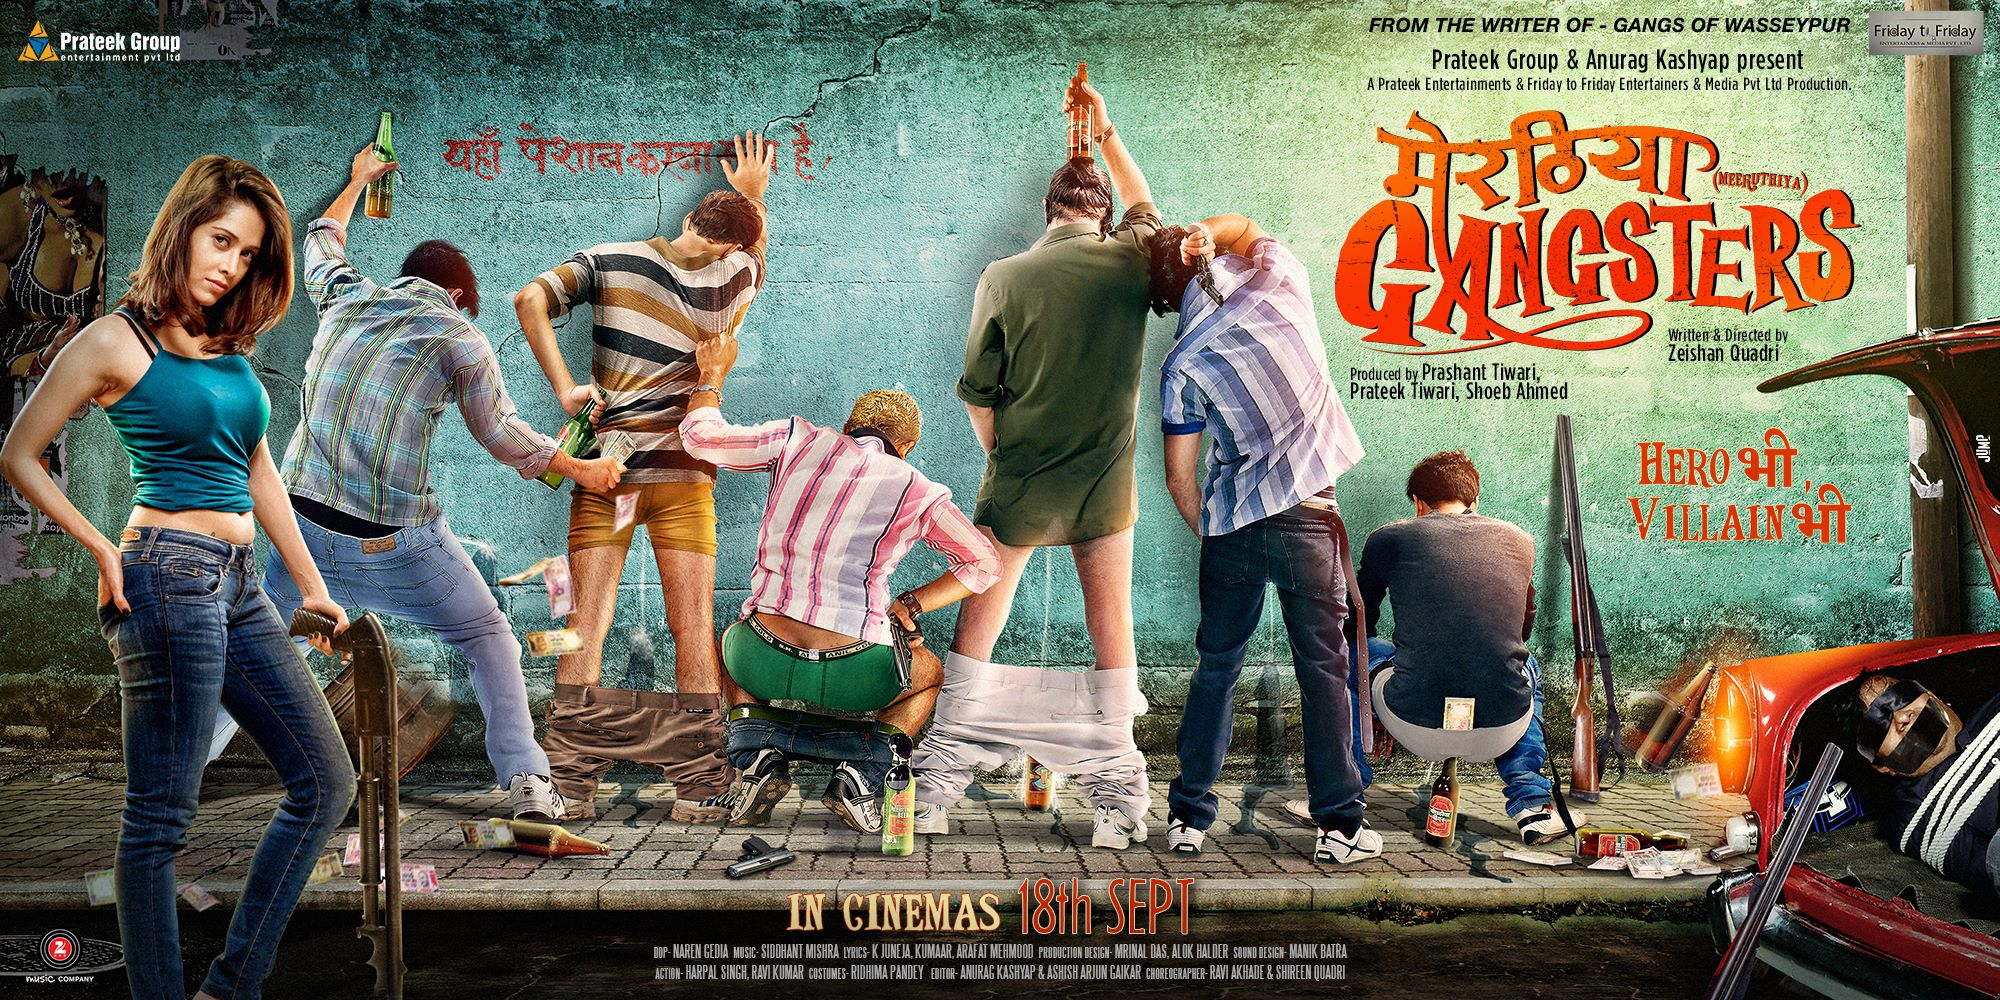 Watch: 'Meeruthiya Gangsters' Trailer | Directed By Zeishan Quadri (Writer, Gangs Of Wasseypur)